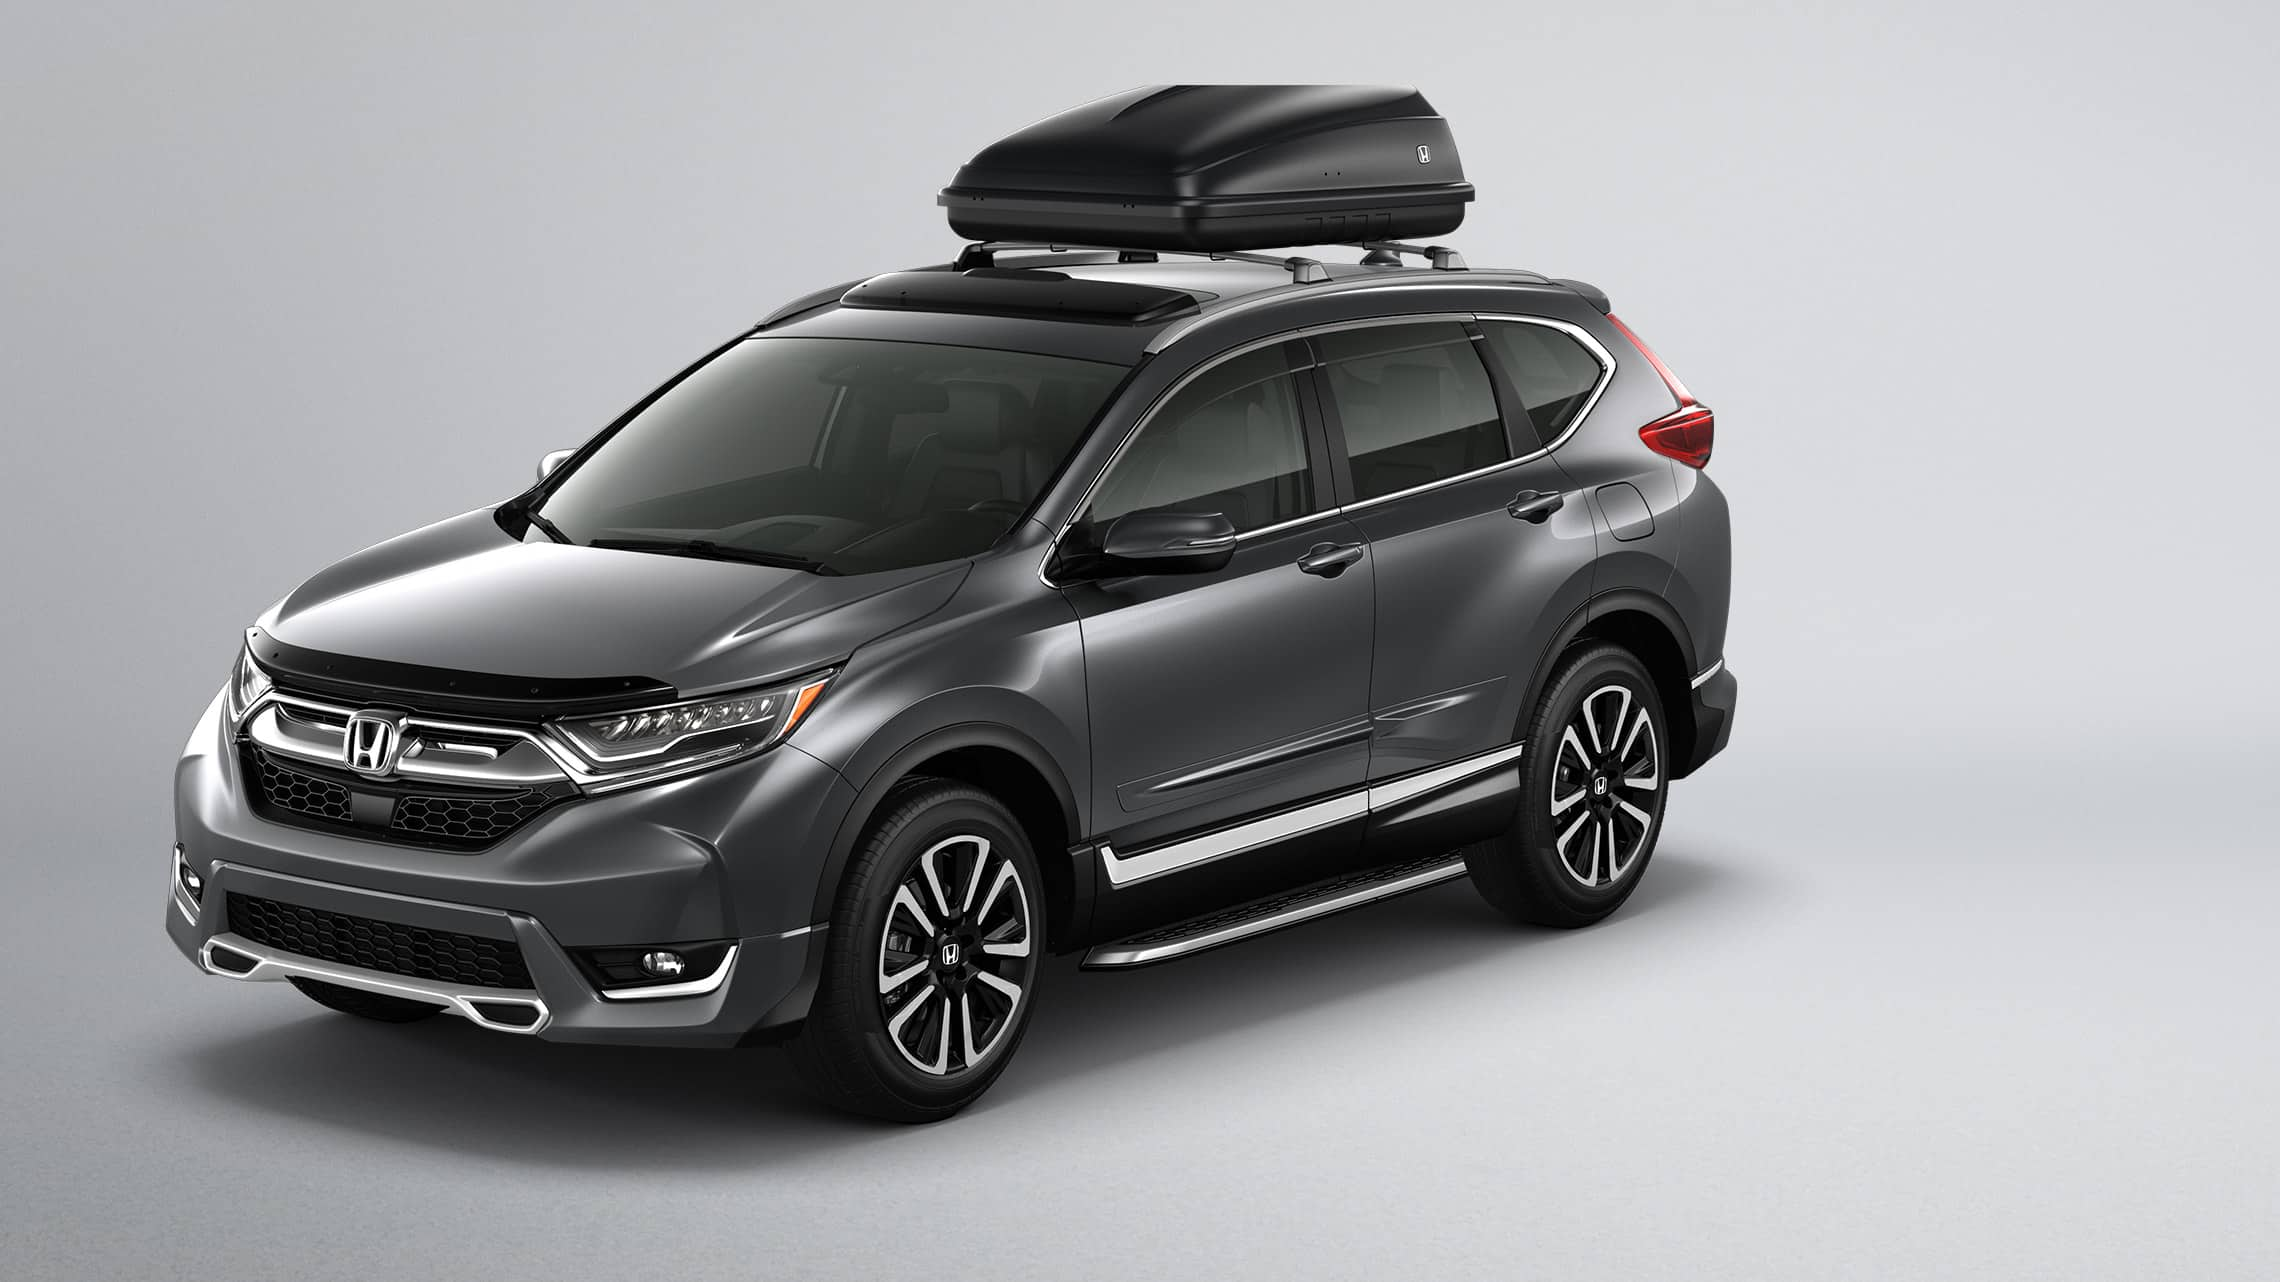 2019 Honda CR-V shown with Honda Genuine Accessories.